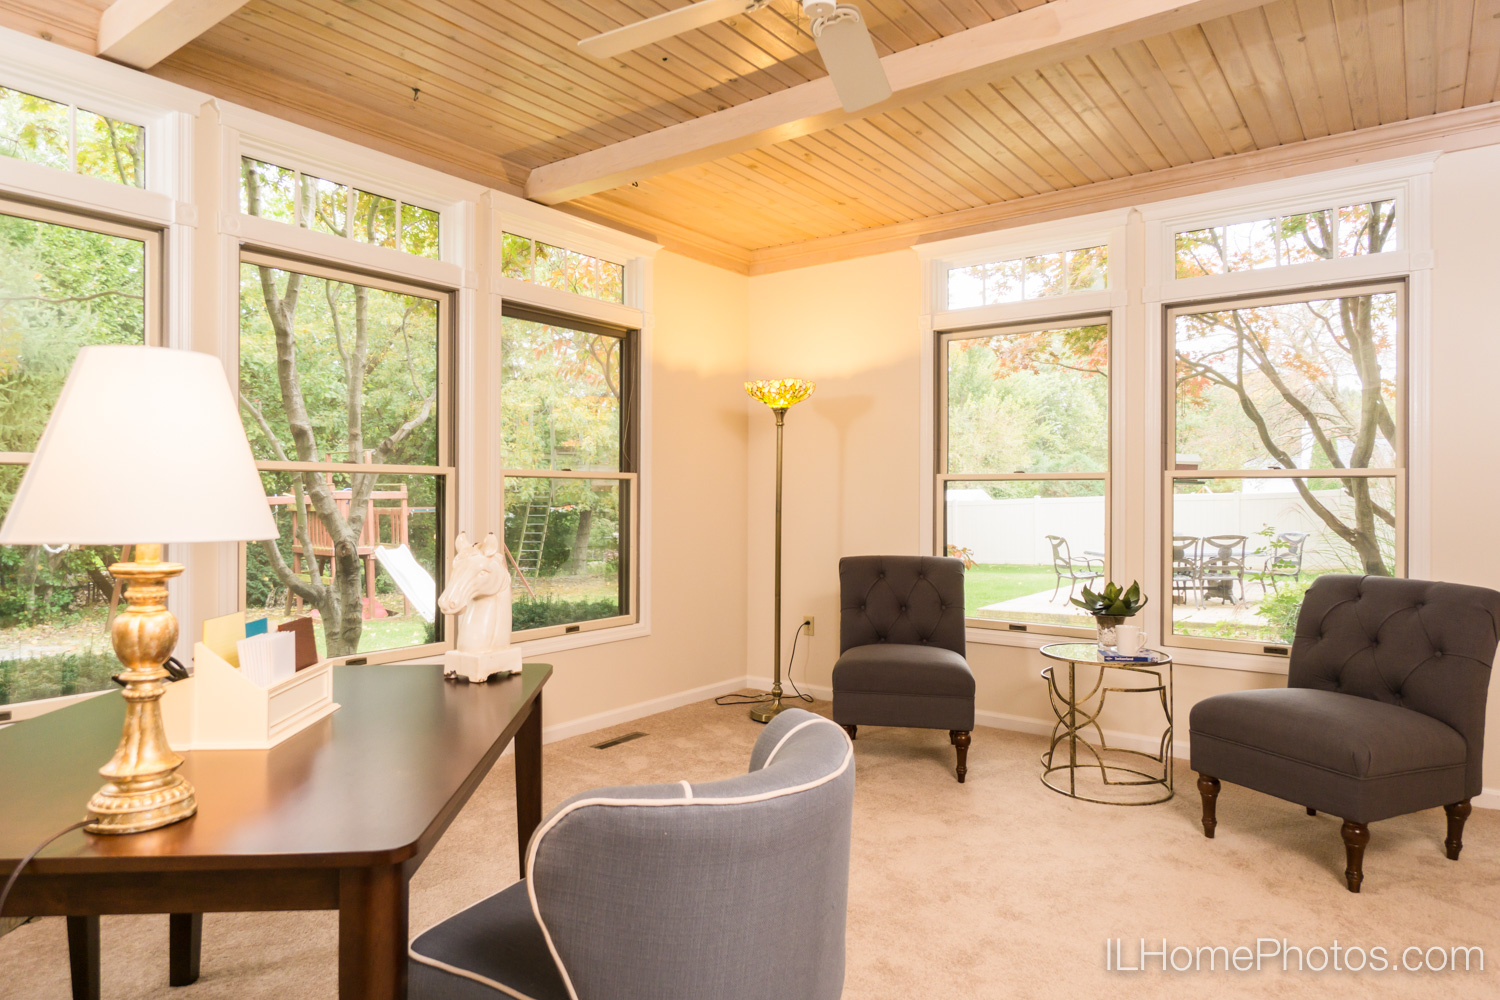 Interior office photograph for real estate in Peoria, IL :: Illinois Home Photography by Michael Gowin, Lincoln, IL